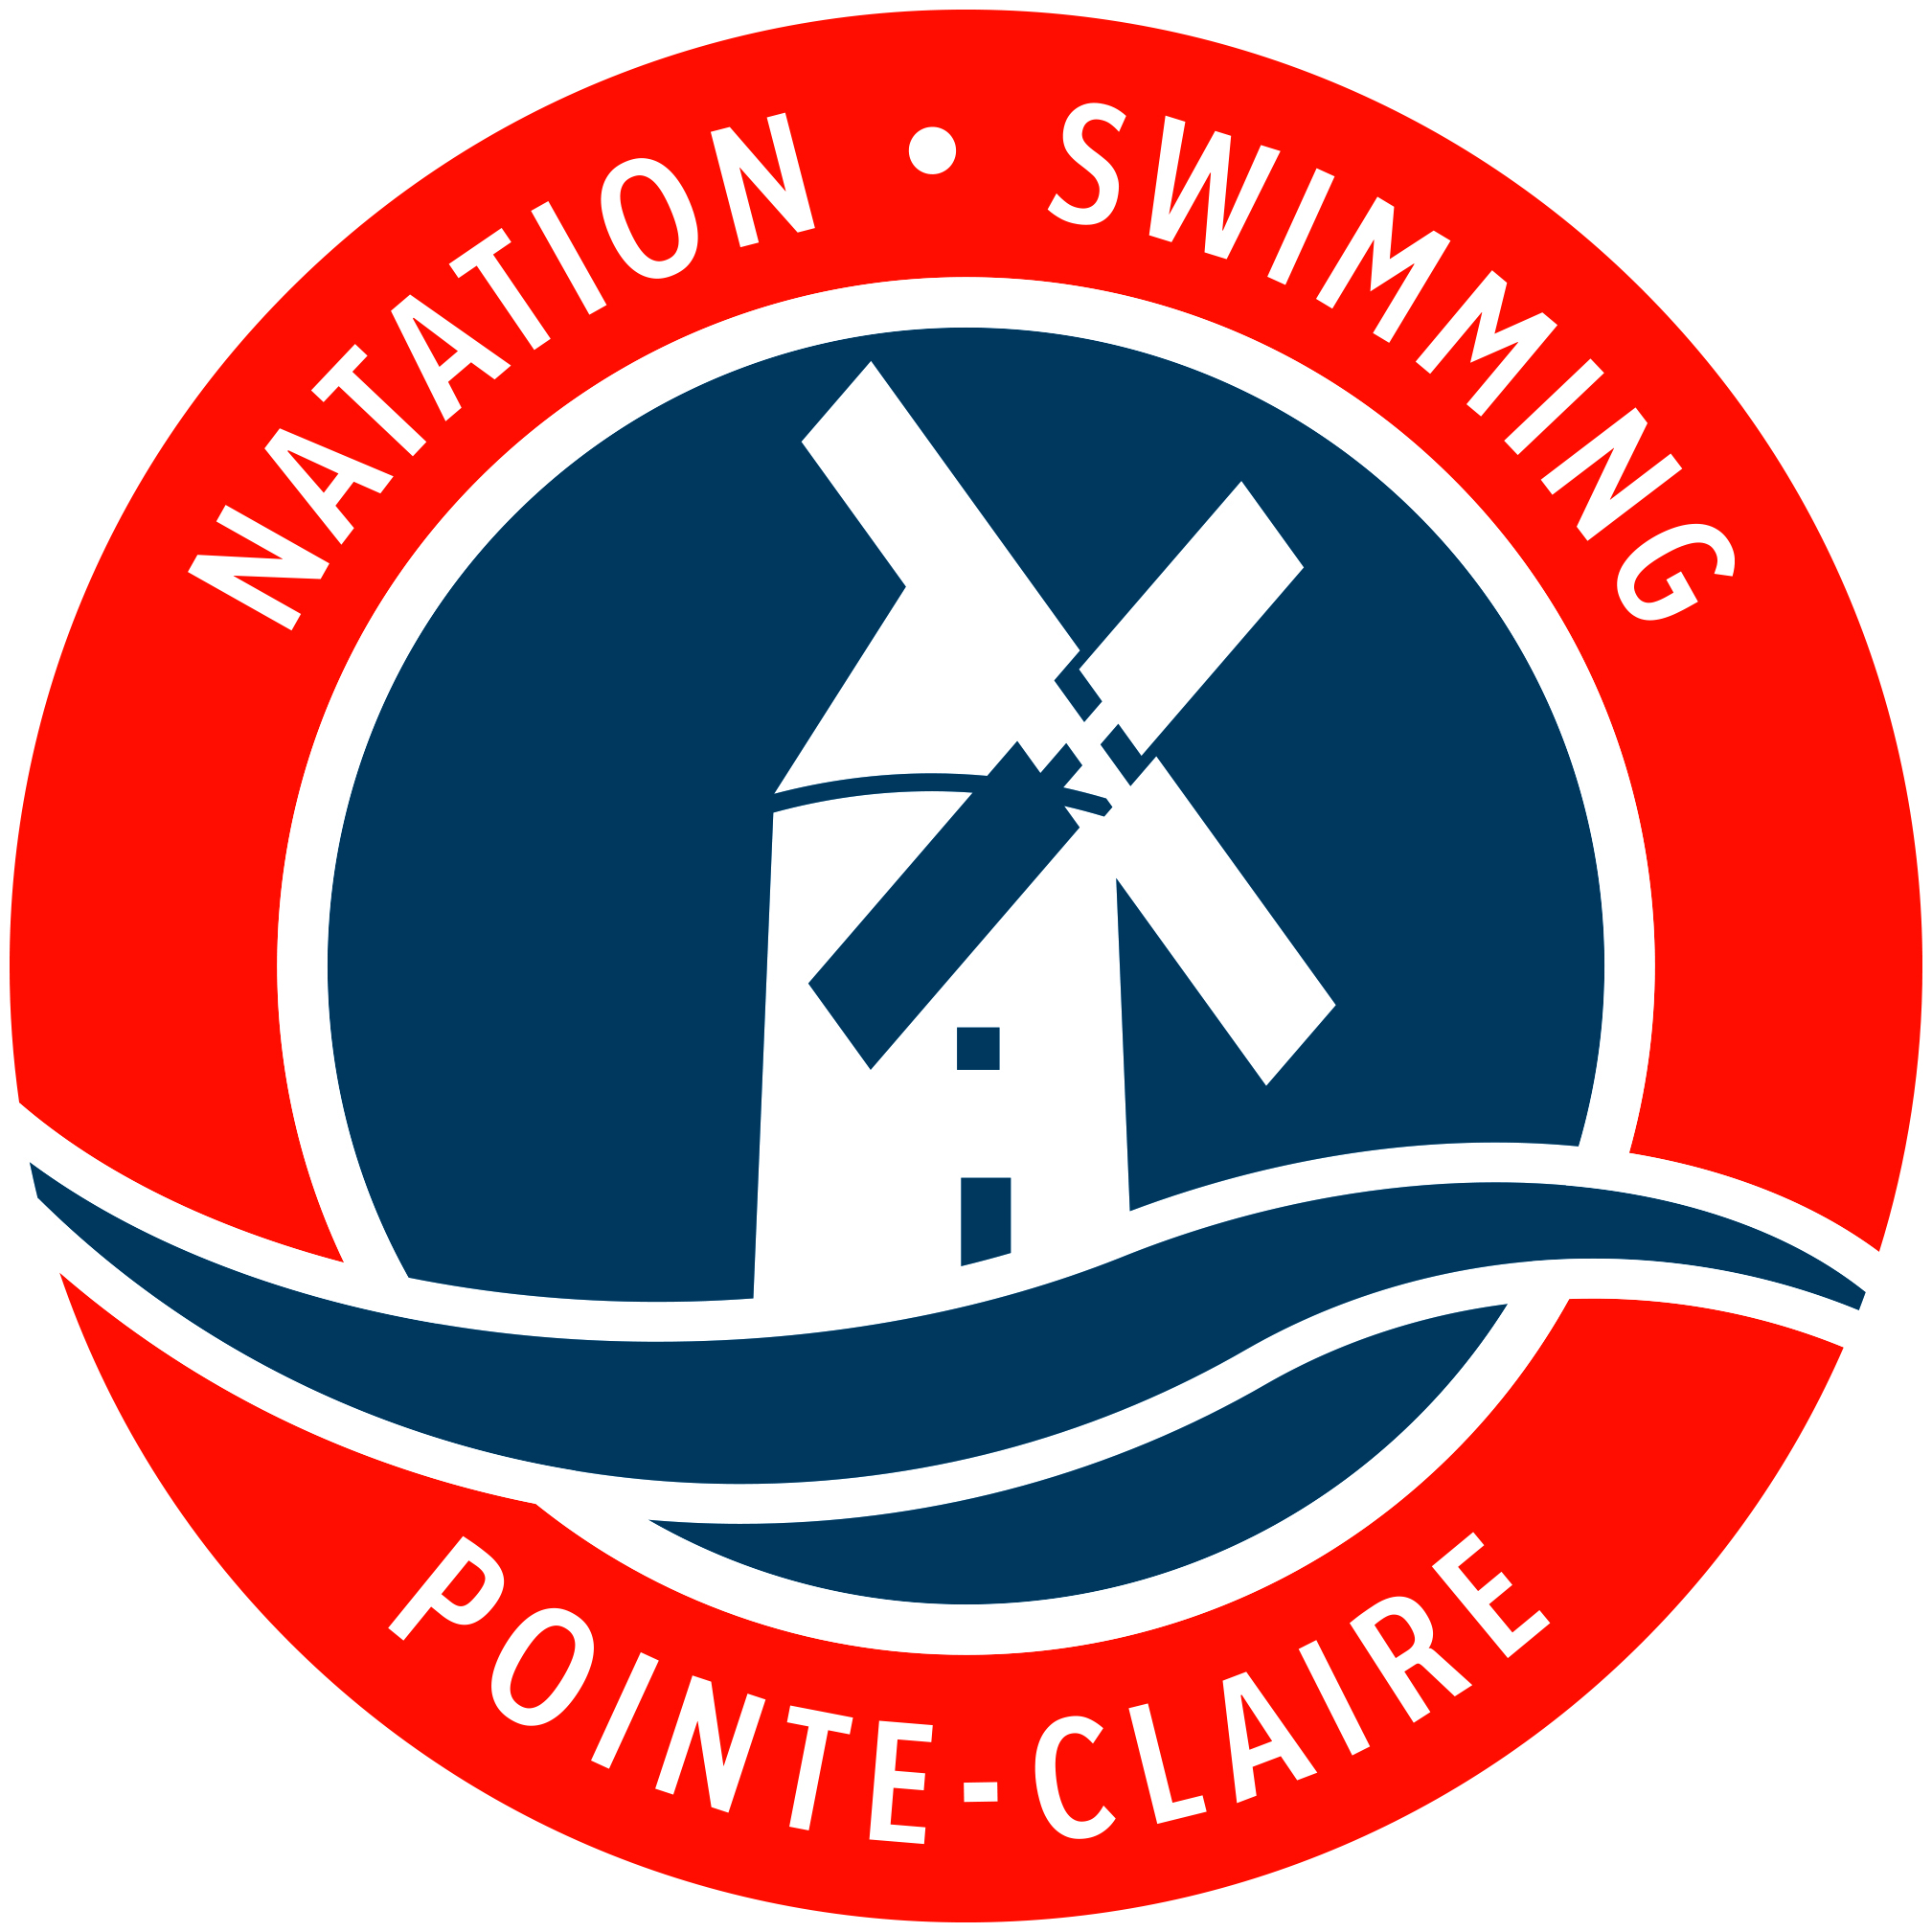 Masters swim workouts los angeles eoua blog for Pointe claire swimming pool schedule